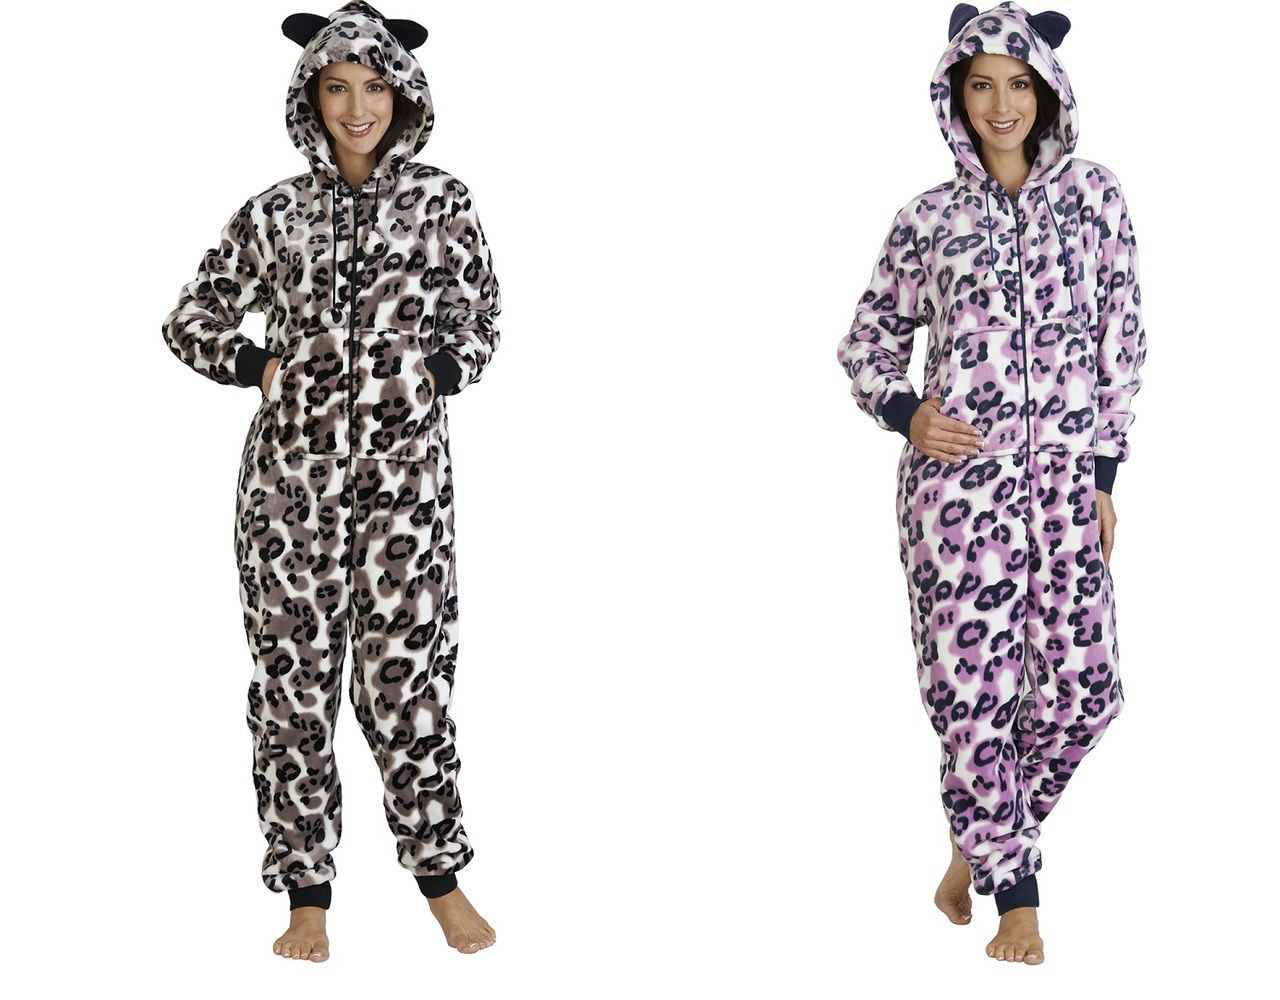 38284dc0f6 These luxurious ladies soft mink fleece zip up onesies are footless and  have an animal print pattern throughout.